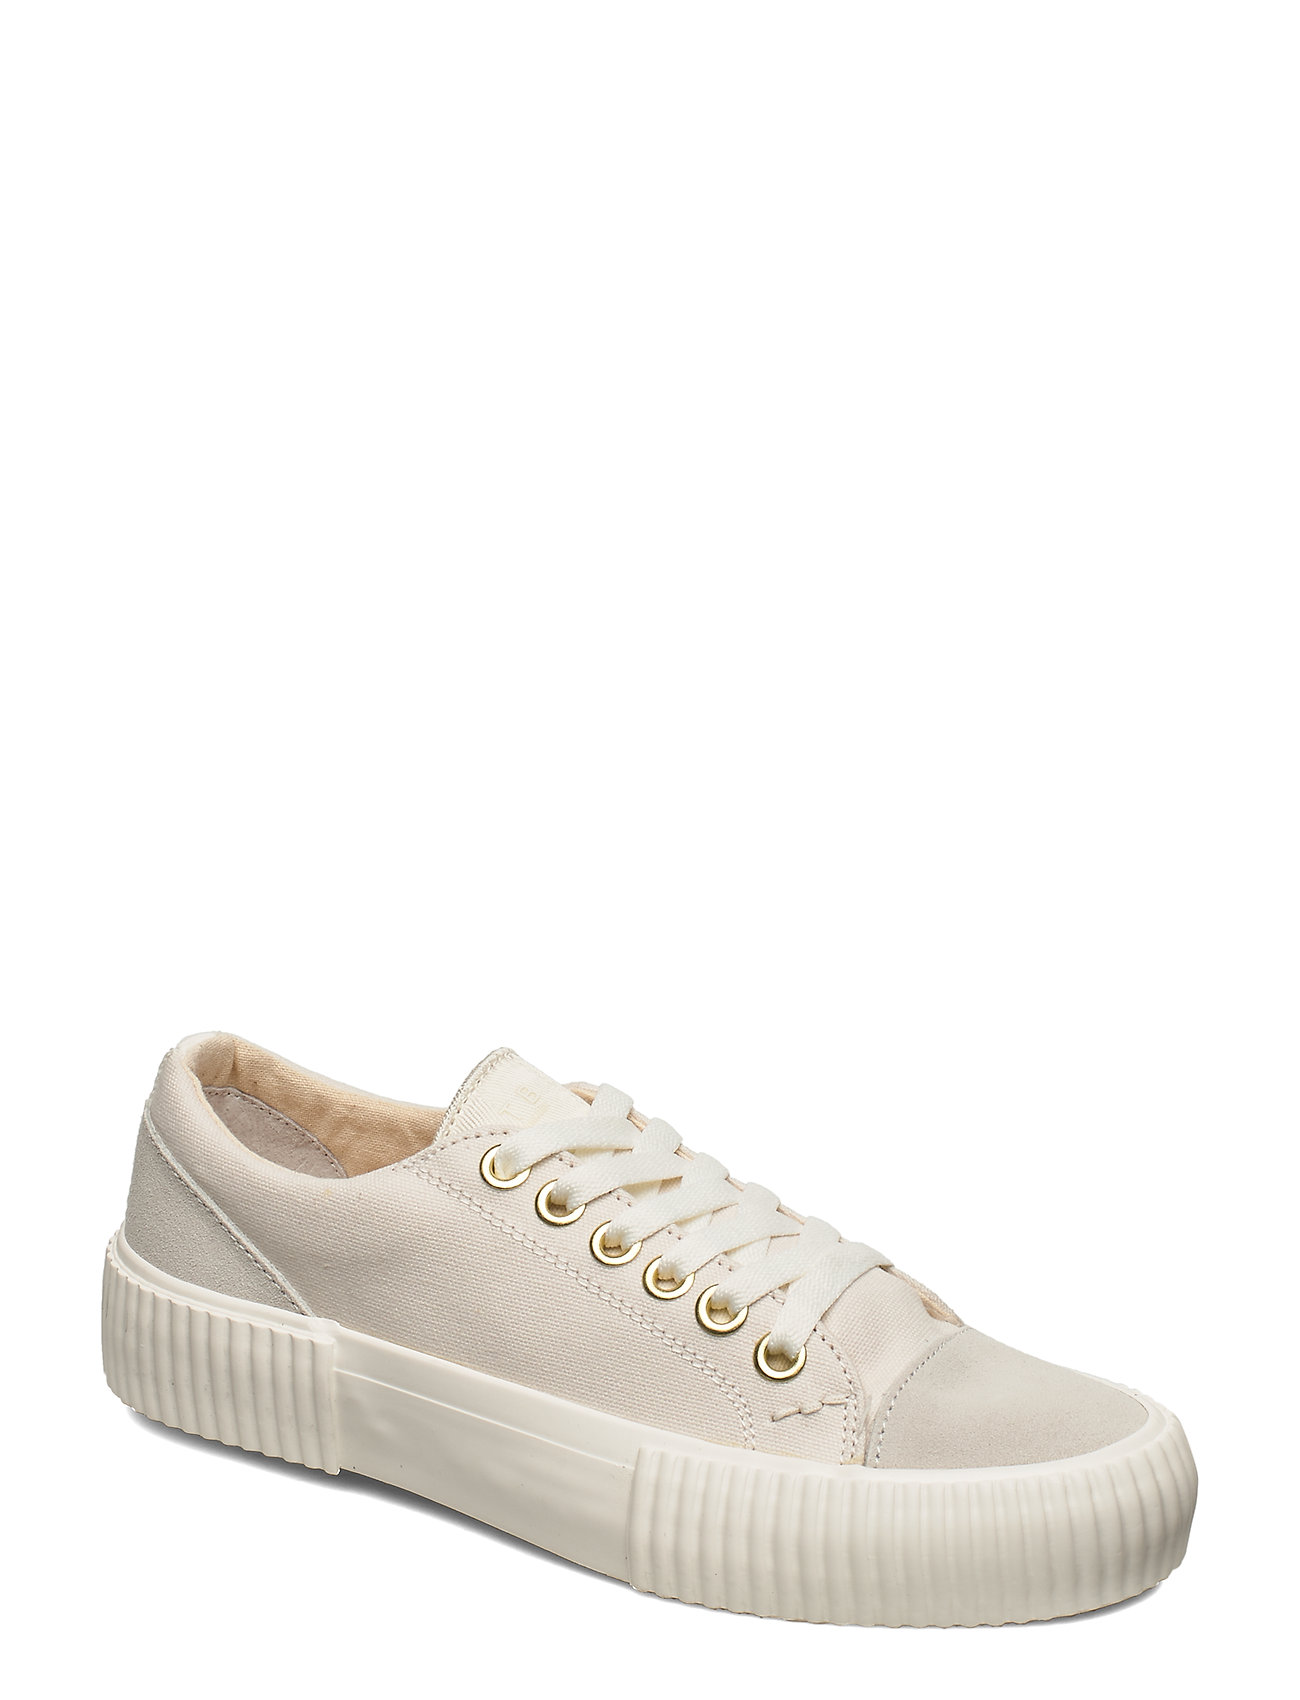 Image of Stb-Andrea T Low-top Sneakers Hvid Shoe The Bear (3359209597)